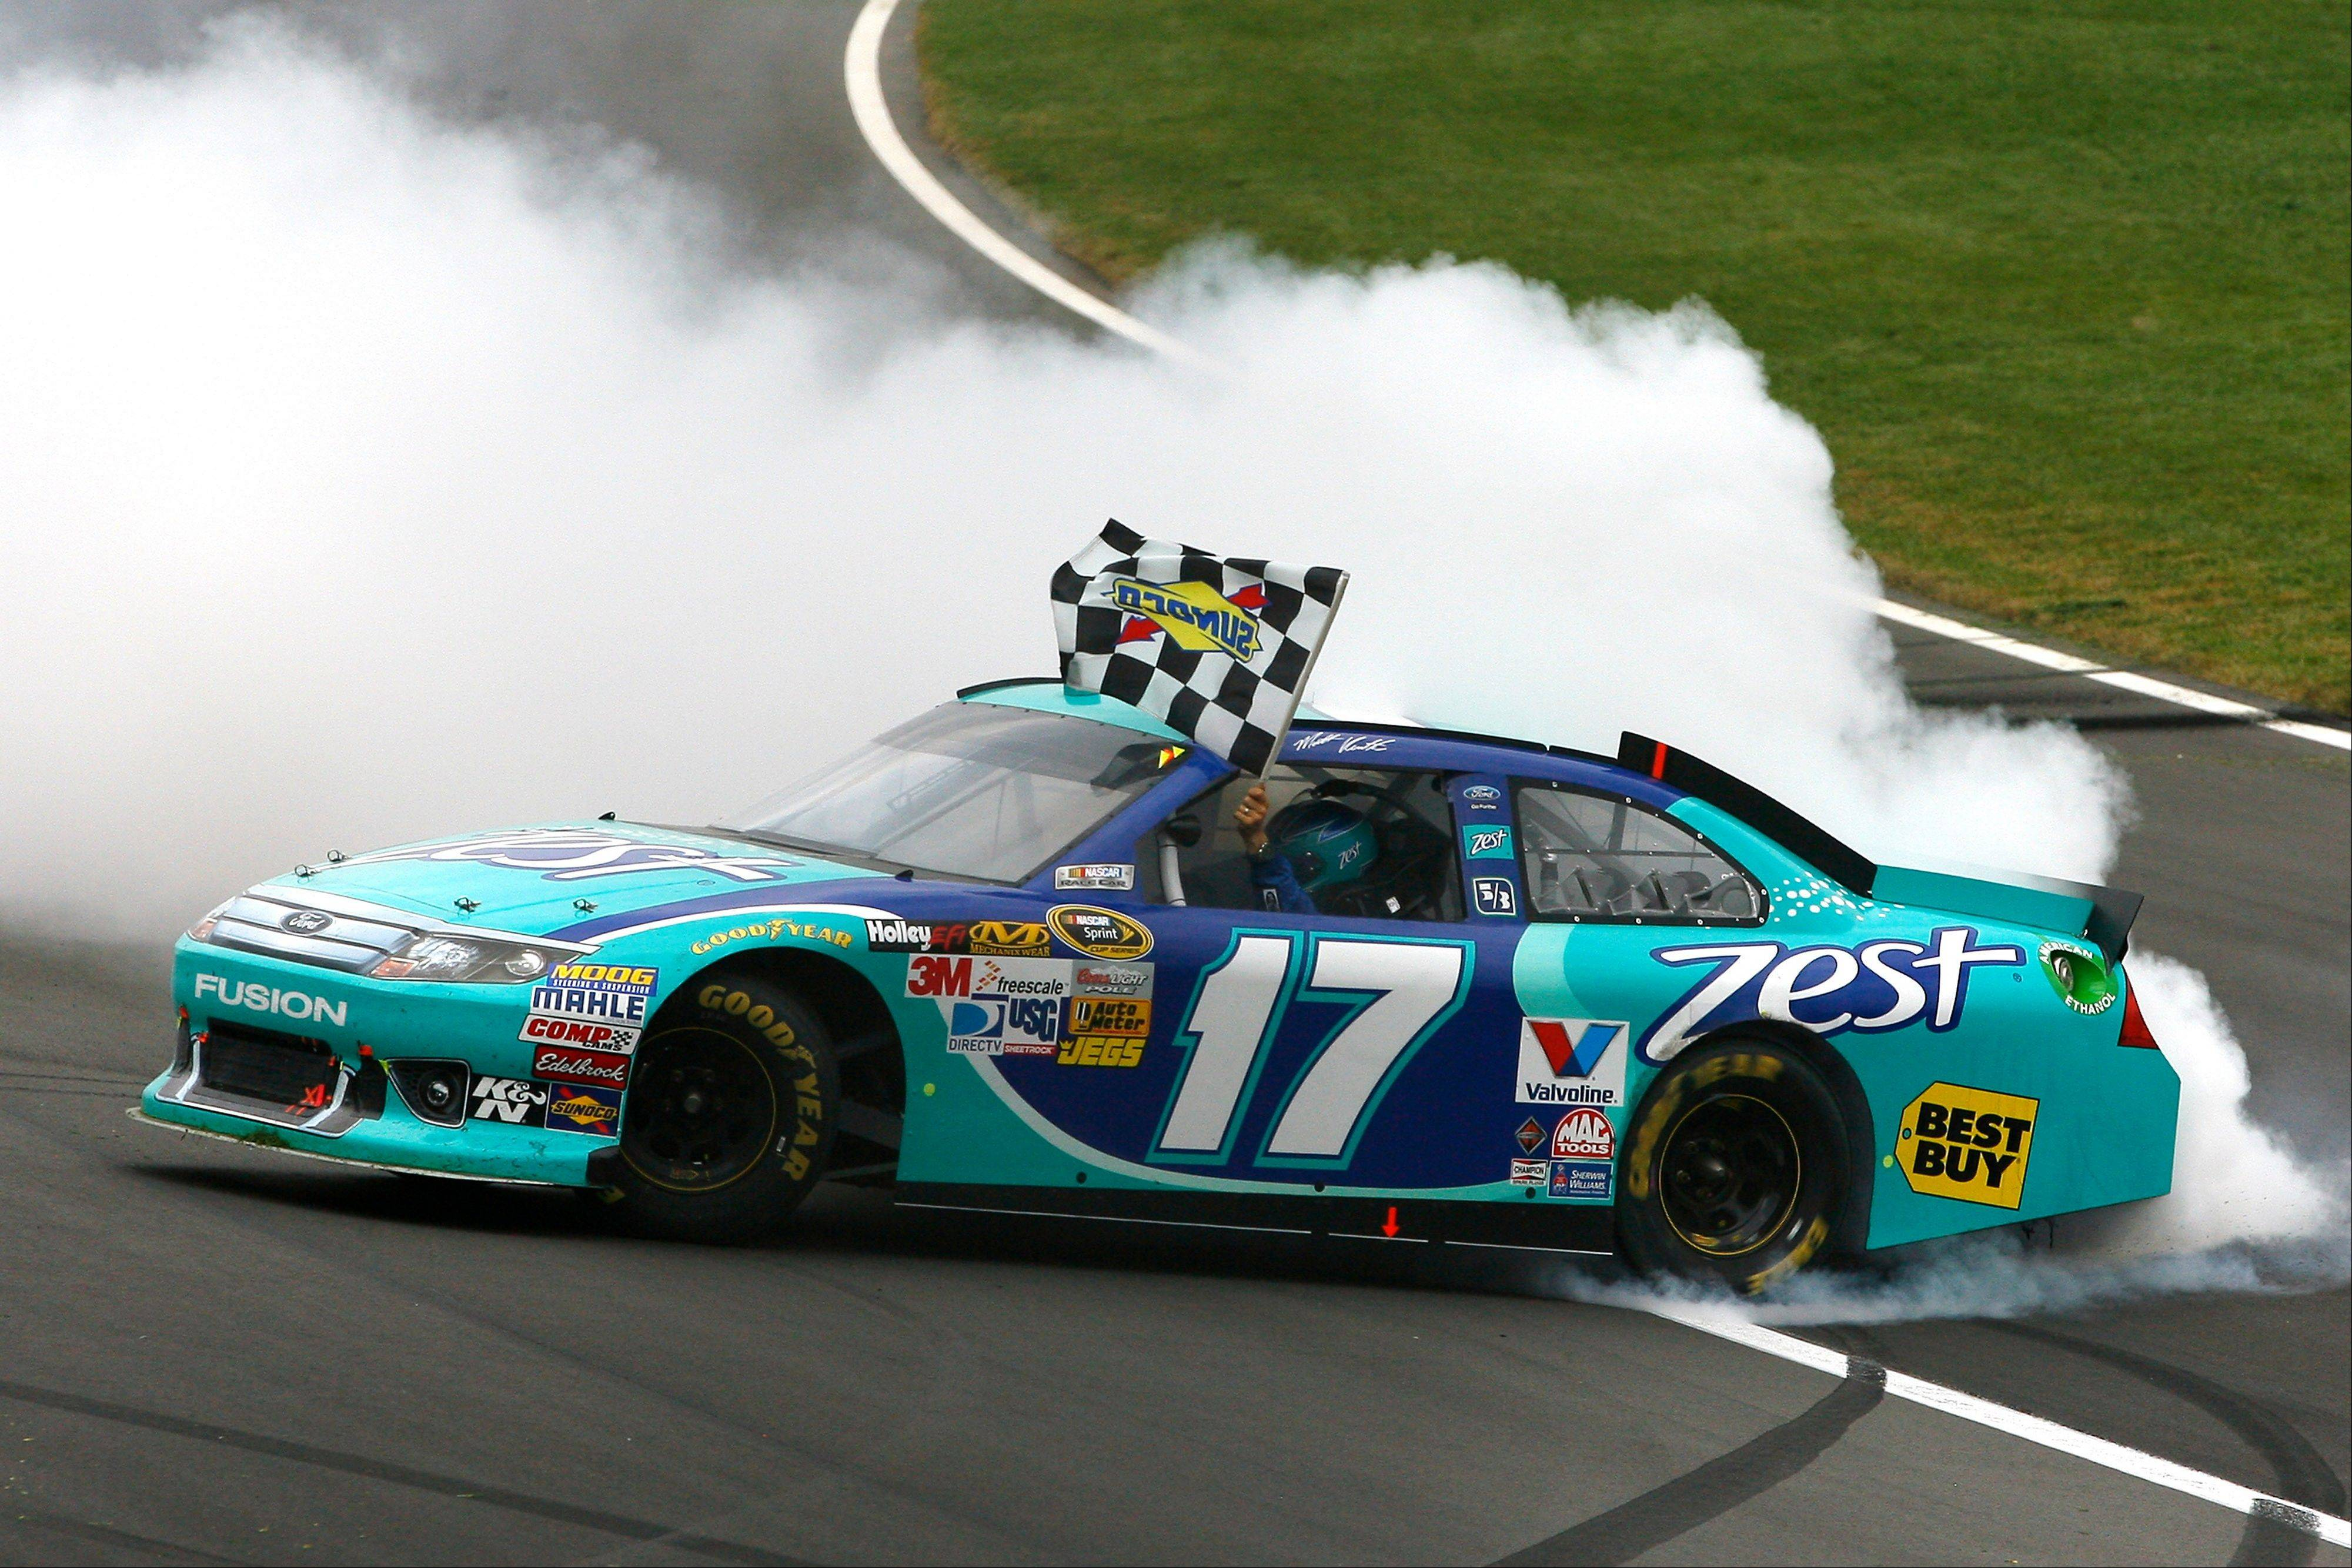 Matt Kenseth does a burnout after winning the NASCAR Sprint Cup Series race at Kansas Speedway on Sunday.